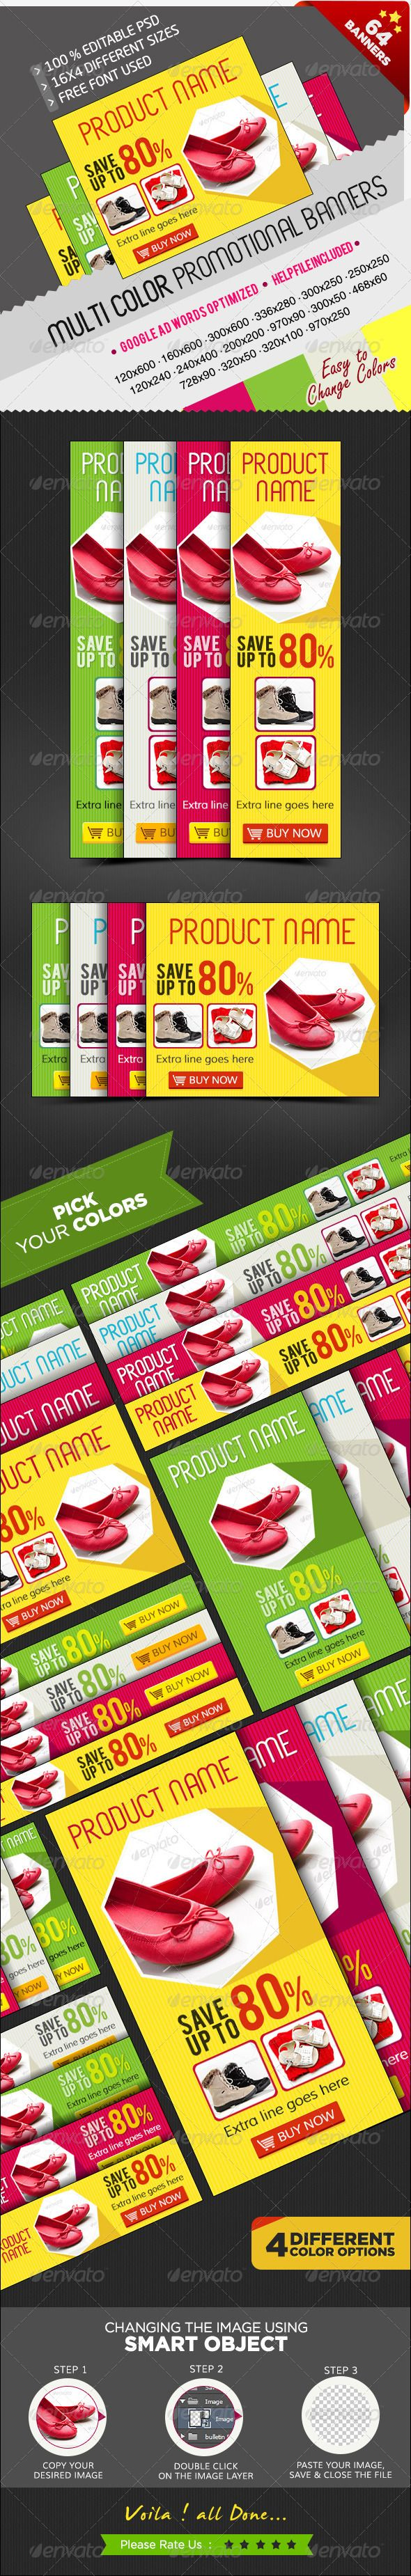 Promotional Banners in Multi Colours - 64 PSDs